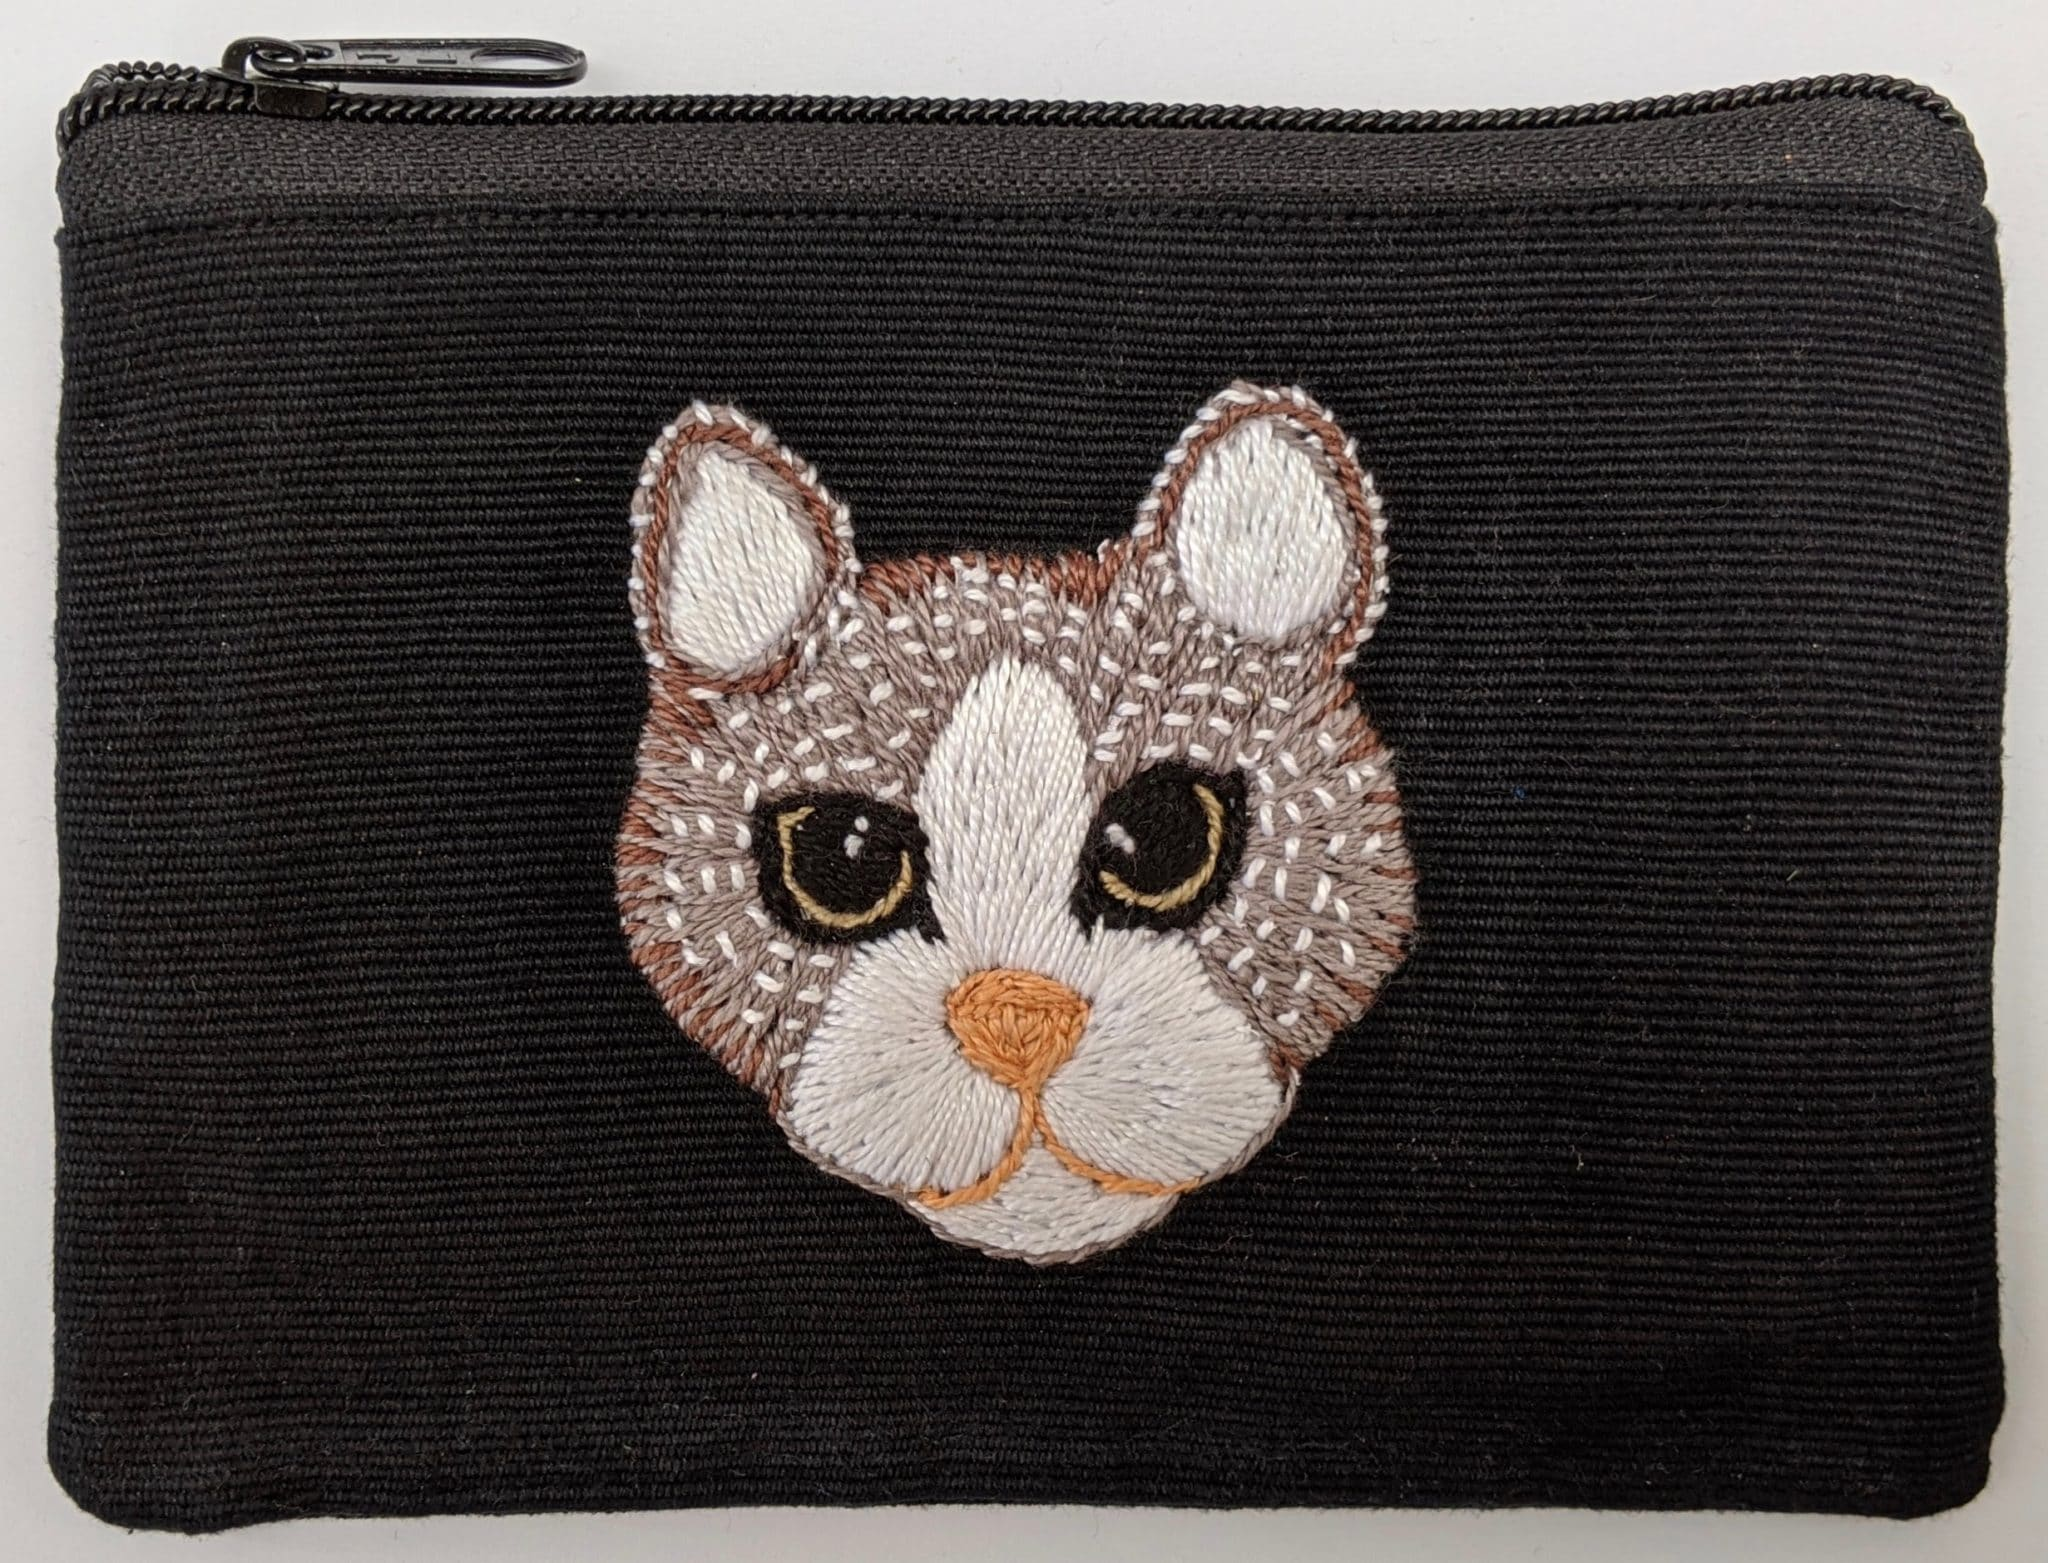 Kitty Cat Hand Embroidered Cotton Coin Purse